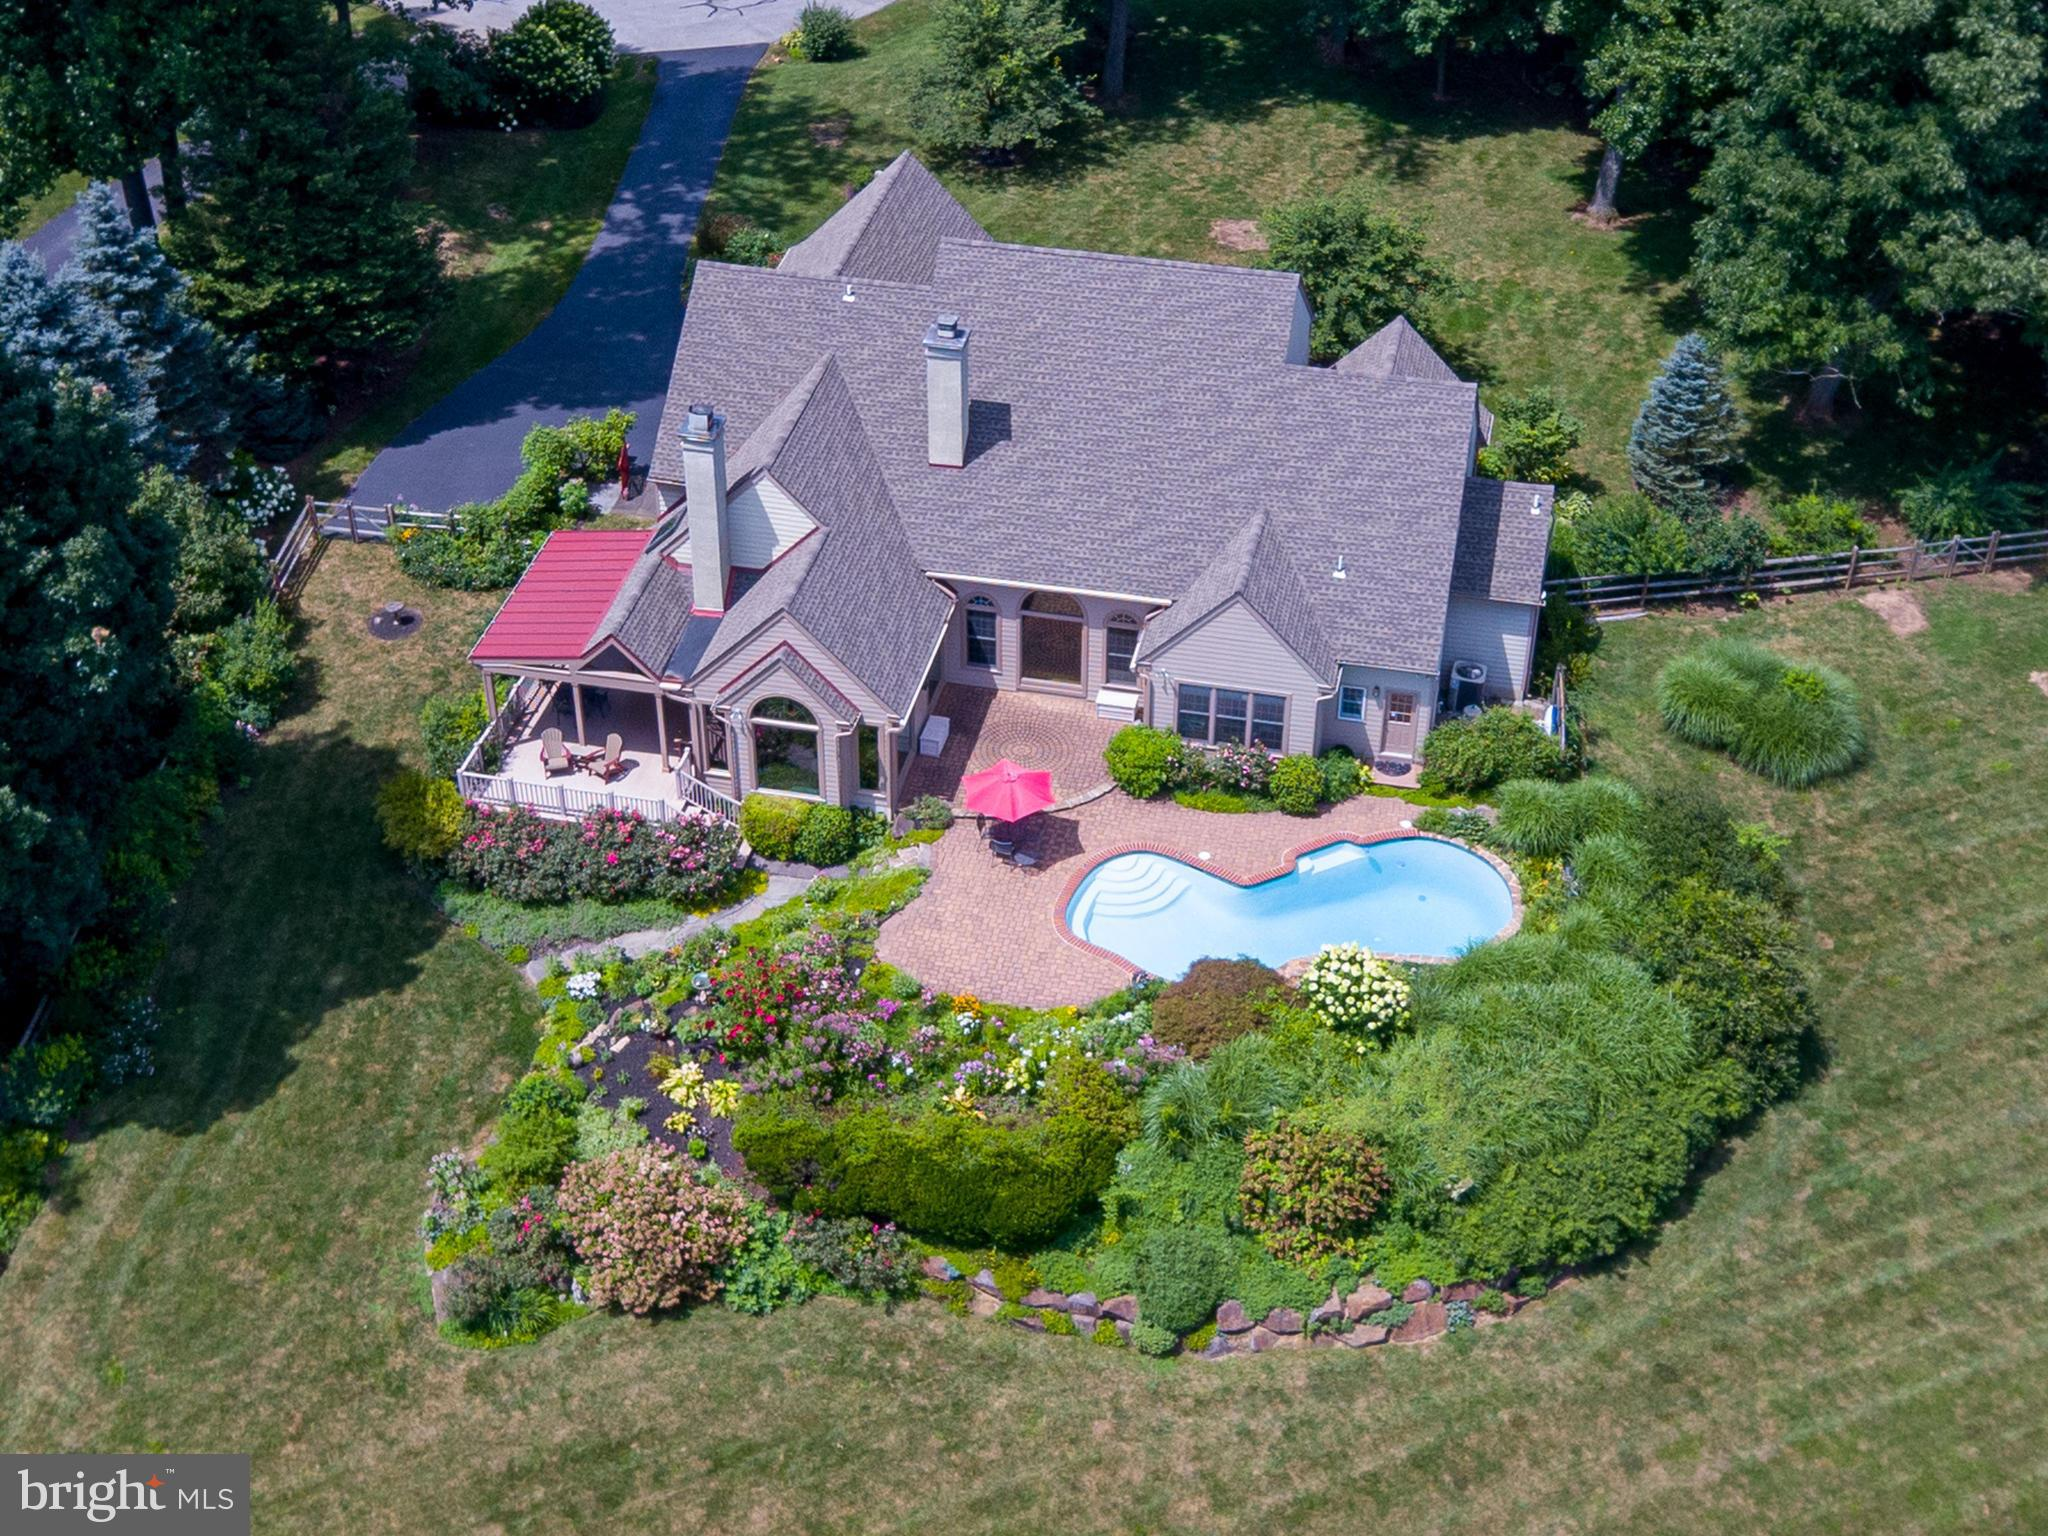 933 COPES LANE, WEST CHESTER, PA 19380